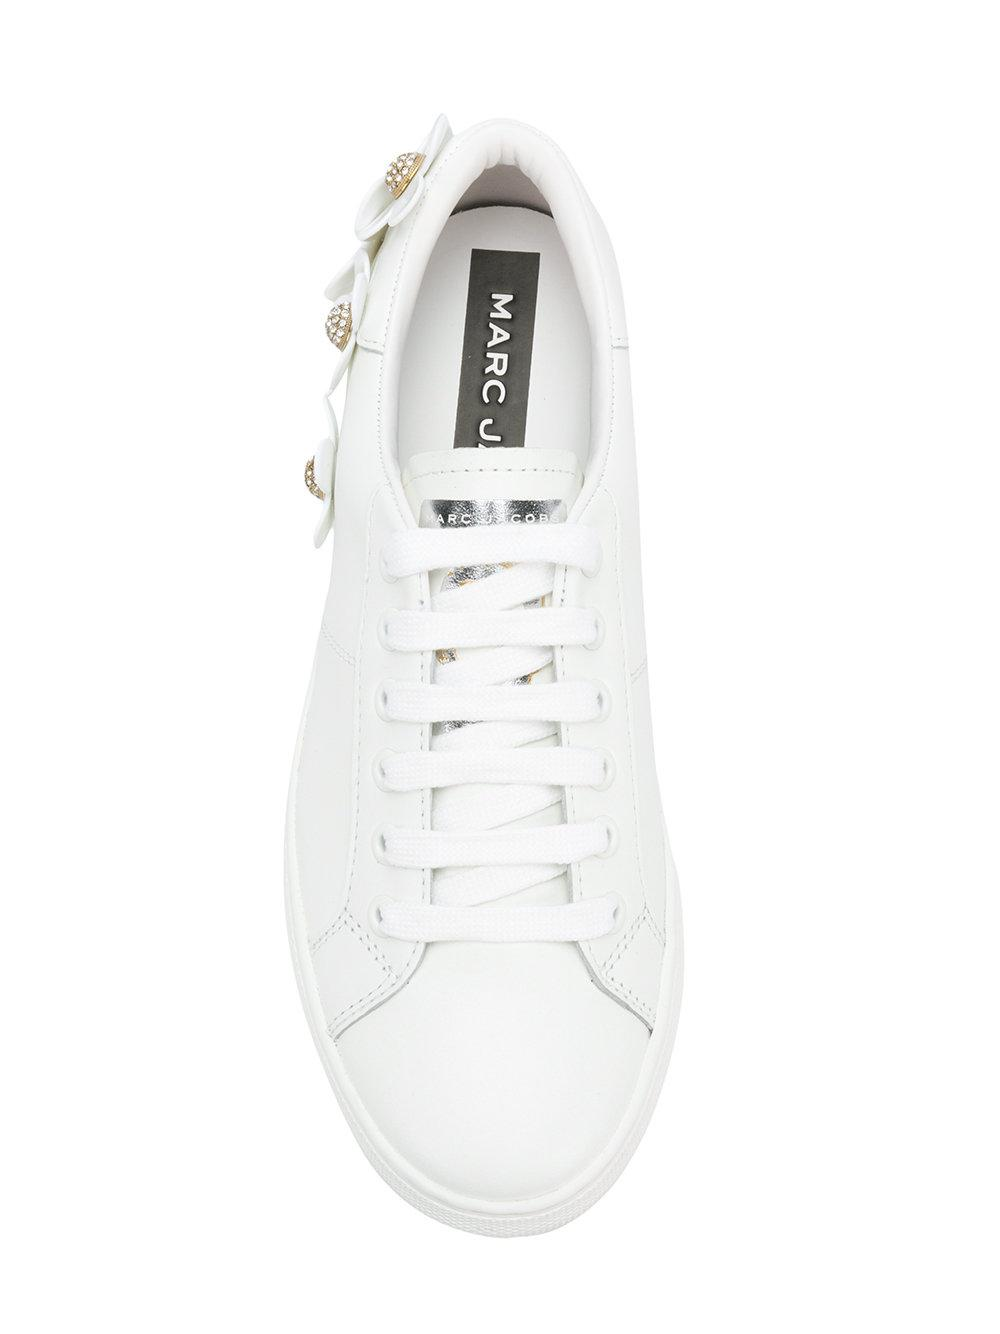 Marc Jacobs Leather Daisy Sneakers in White